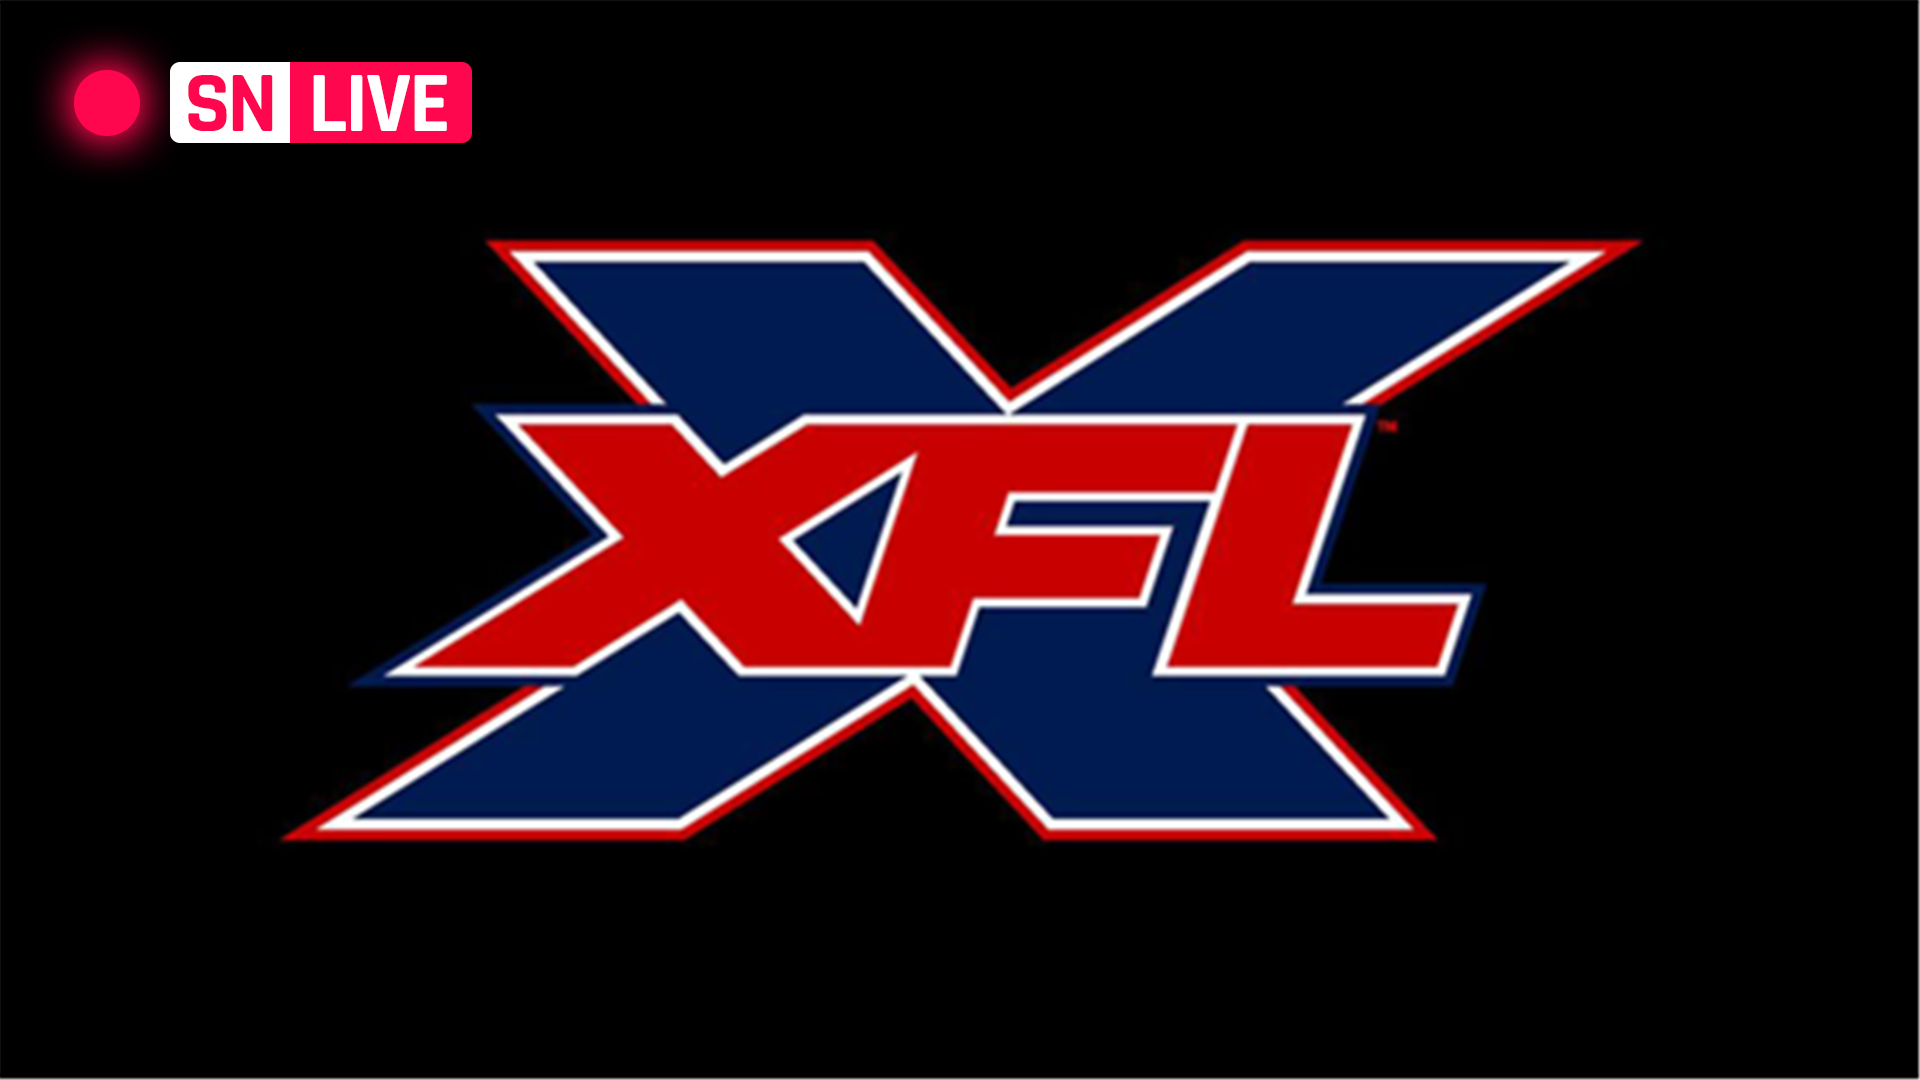 XFL Draft tracker: Live results, complete picks list, rosters for new football league